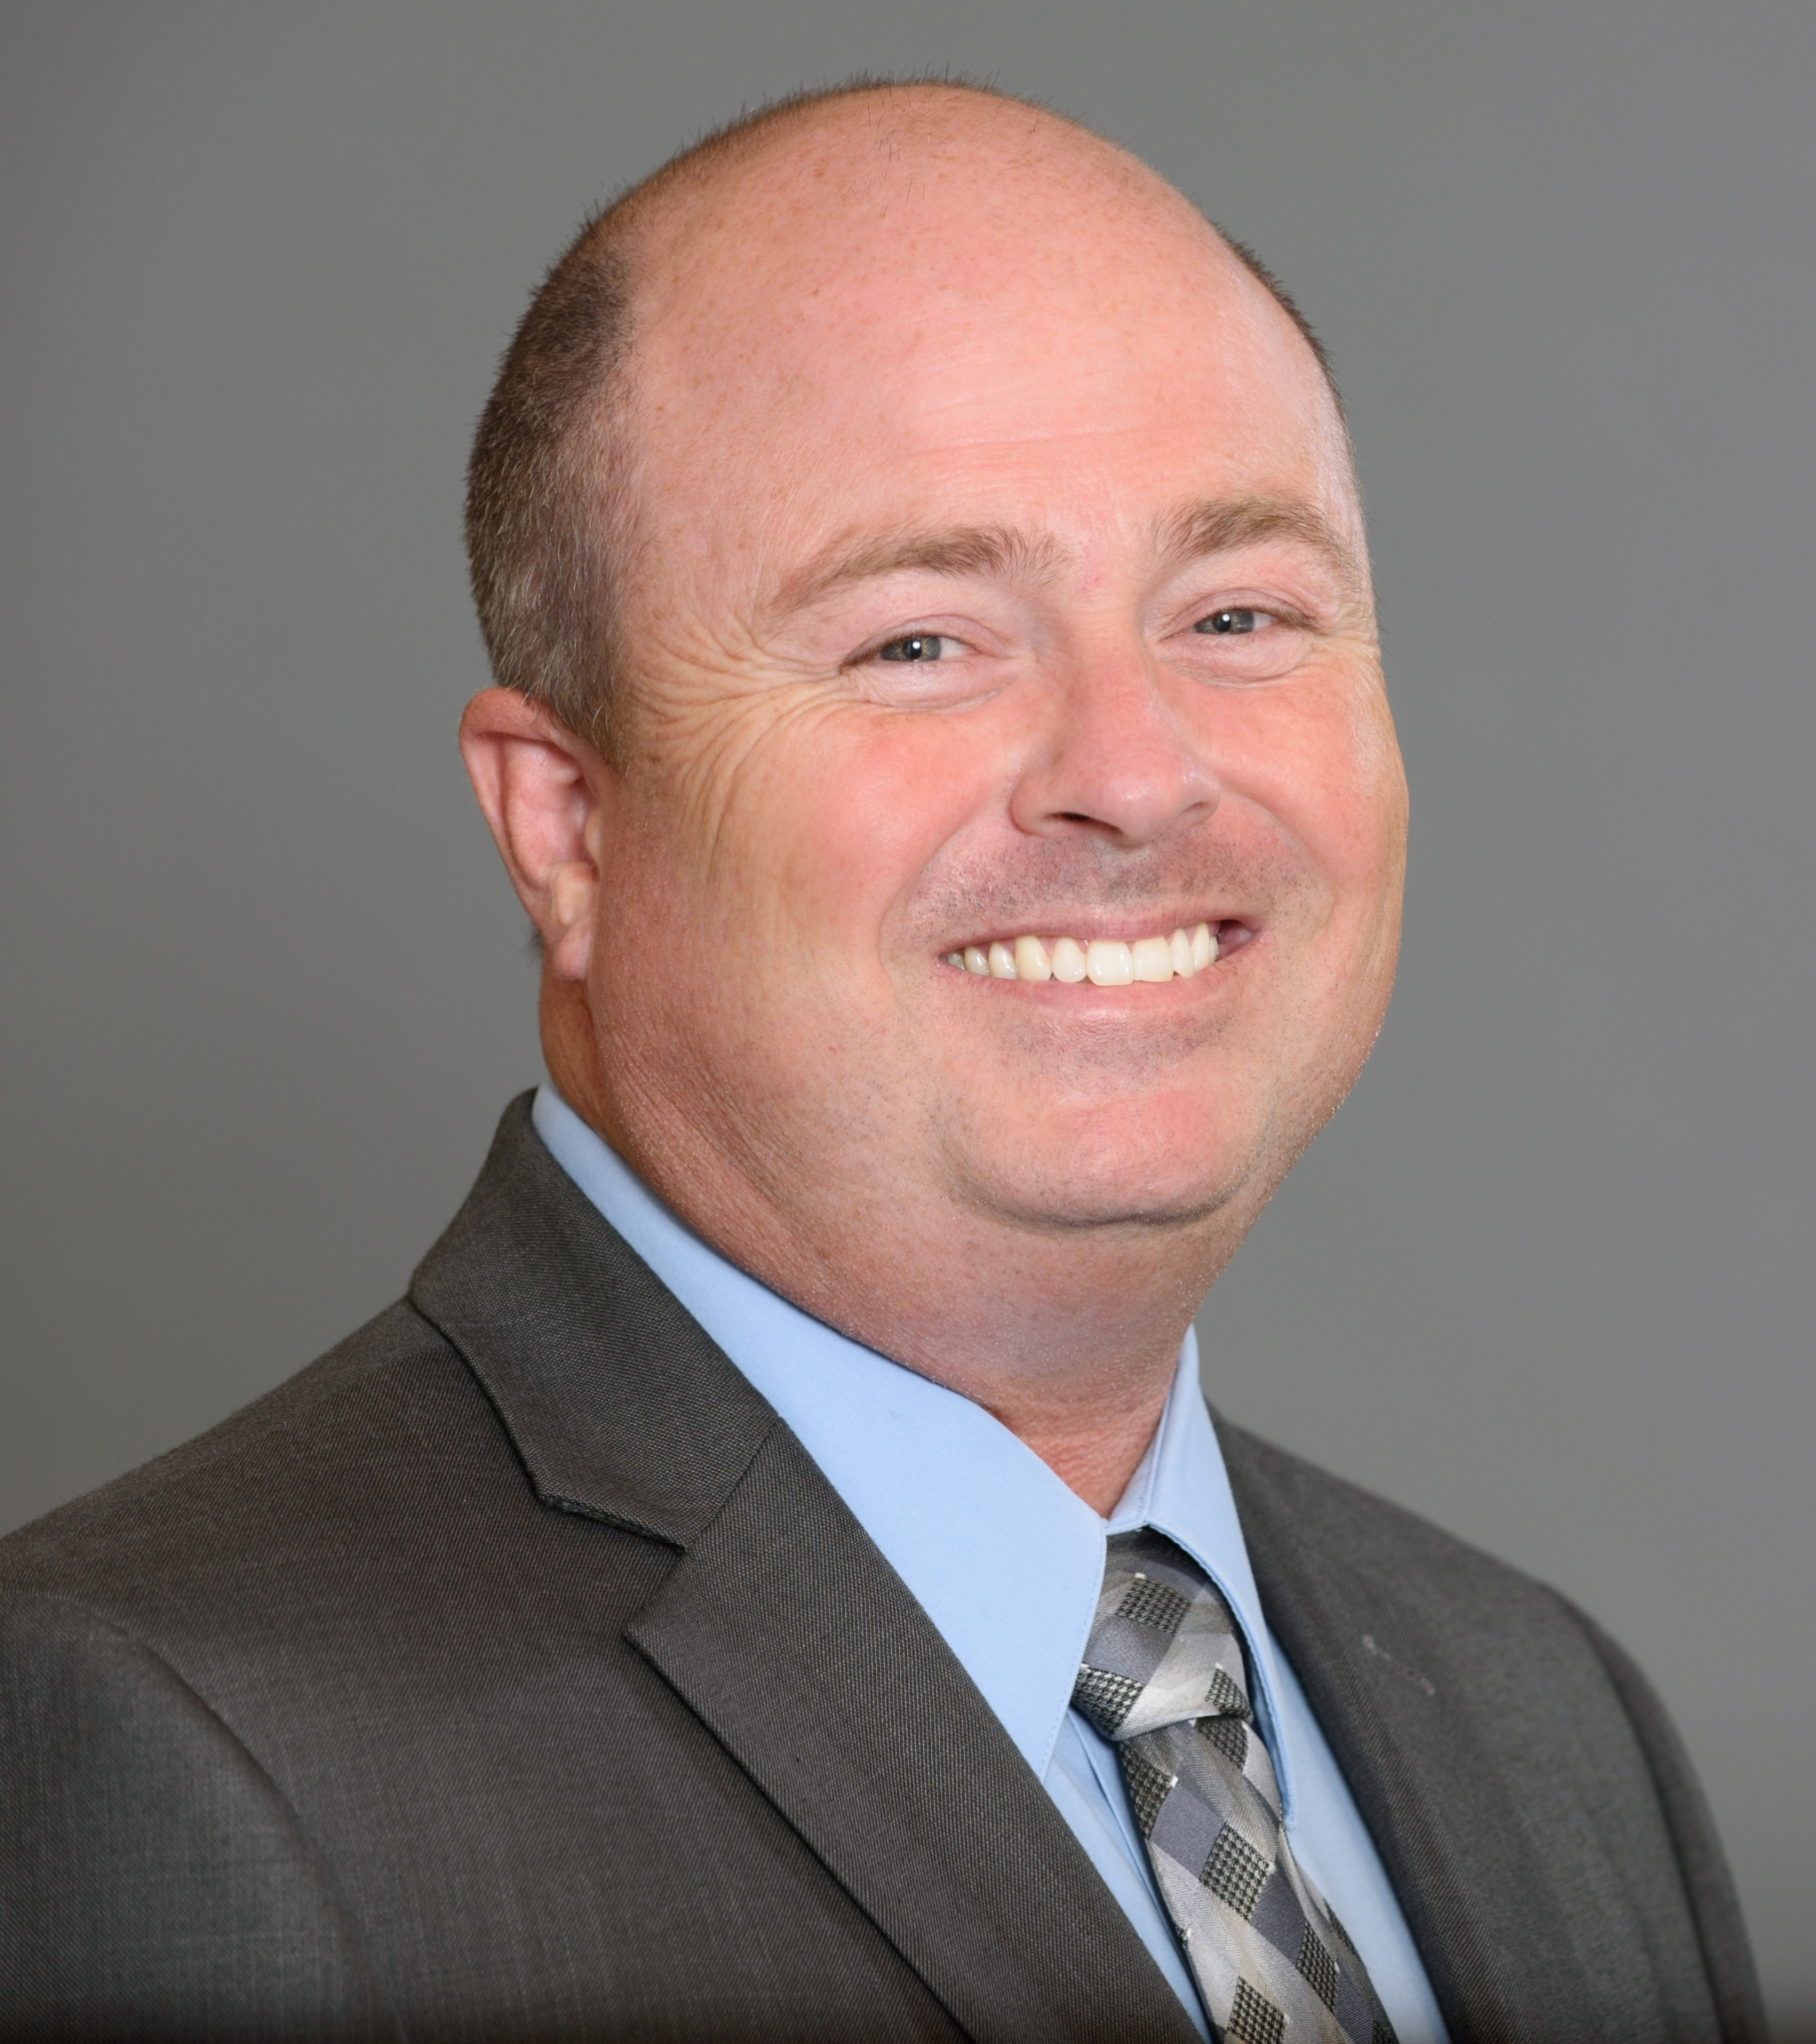 Headshot of Anthony Evett, Director of Engineering